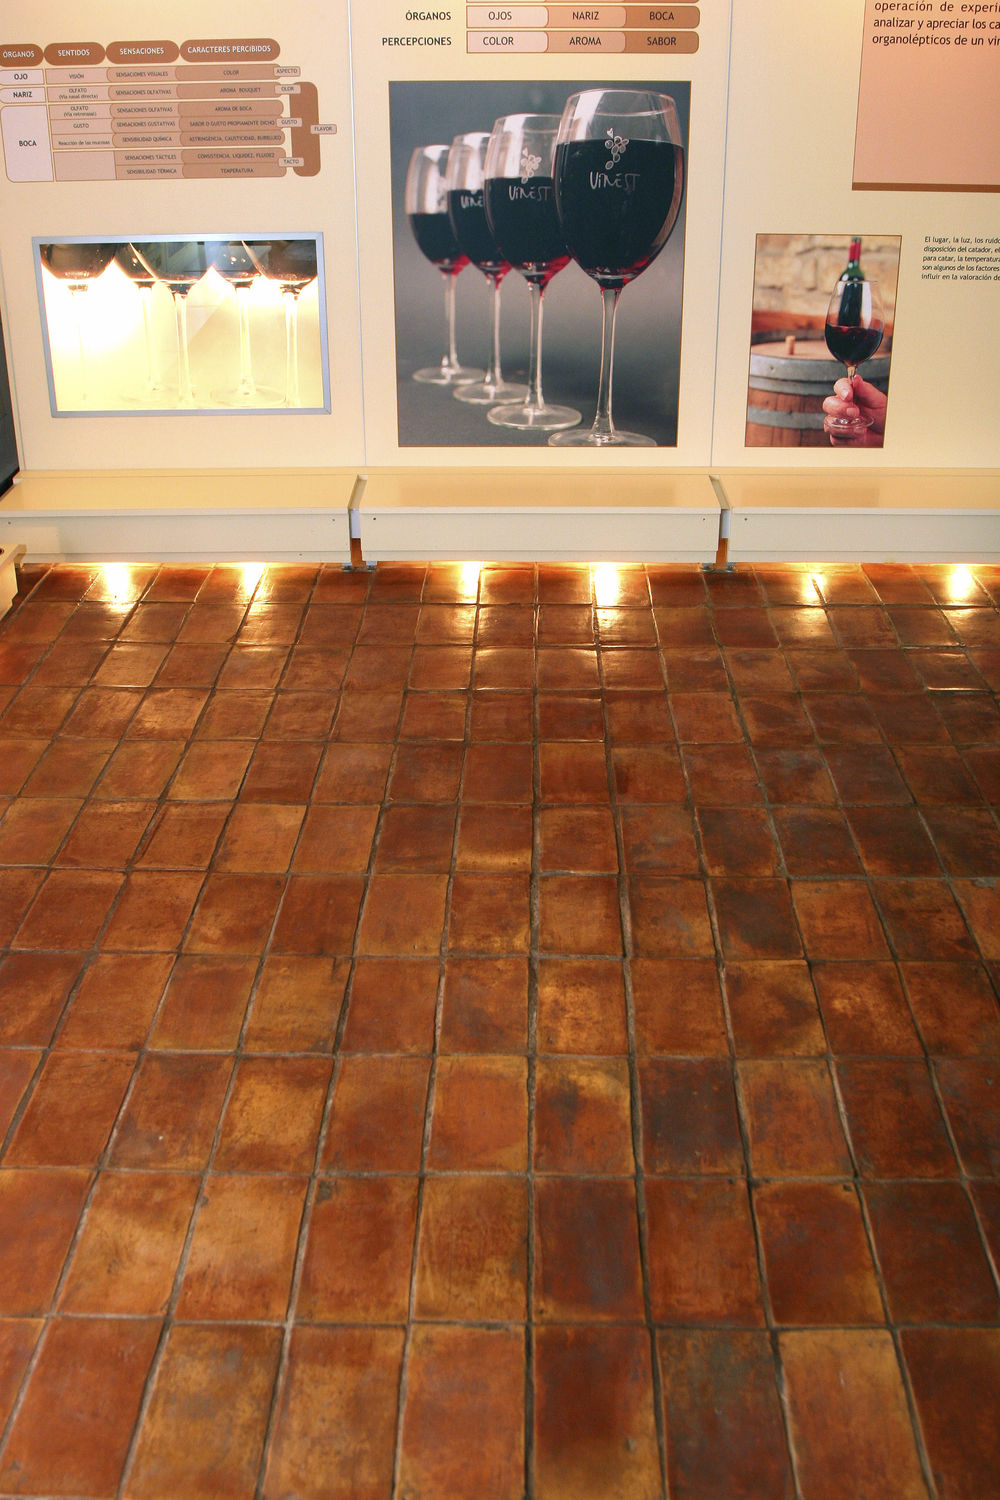 Indoor tile floor terracotta matte rectangular ceramicas indoor tile floor terracotta matte rectangular ceramicas antonio aleman dailygadgetfo Gallery